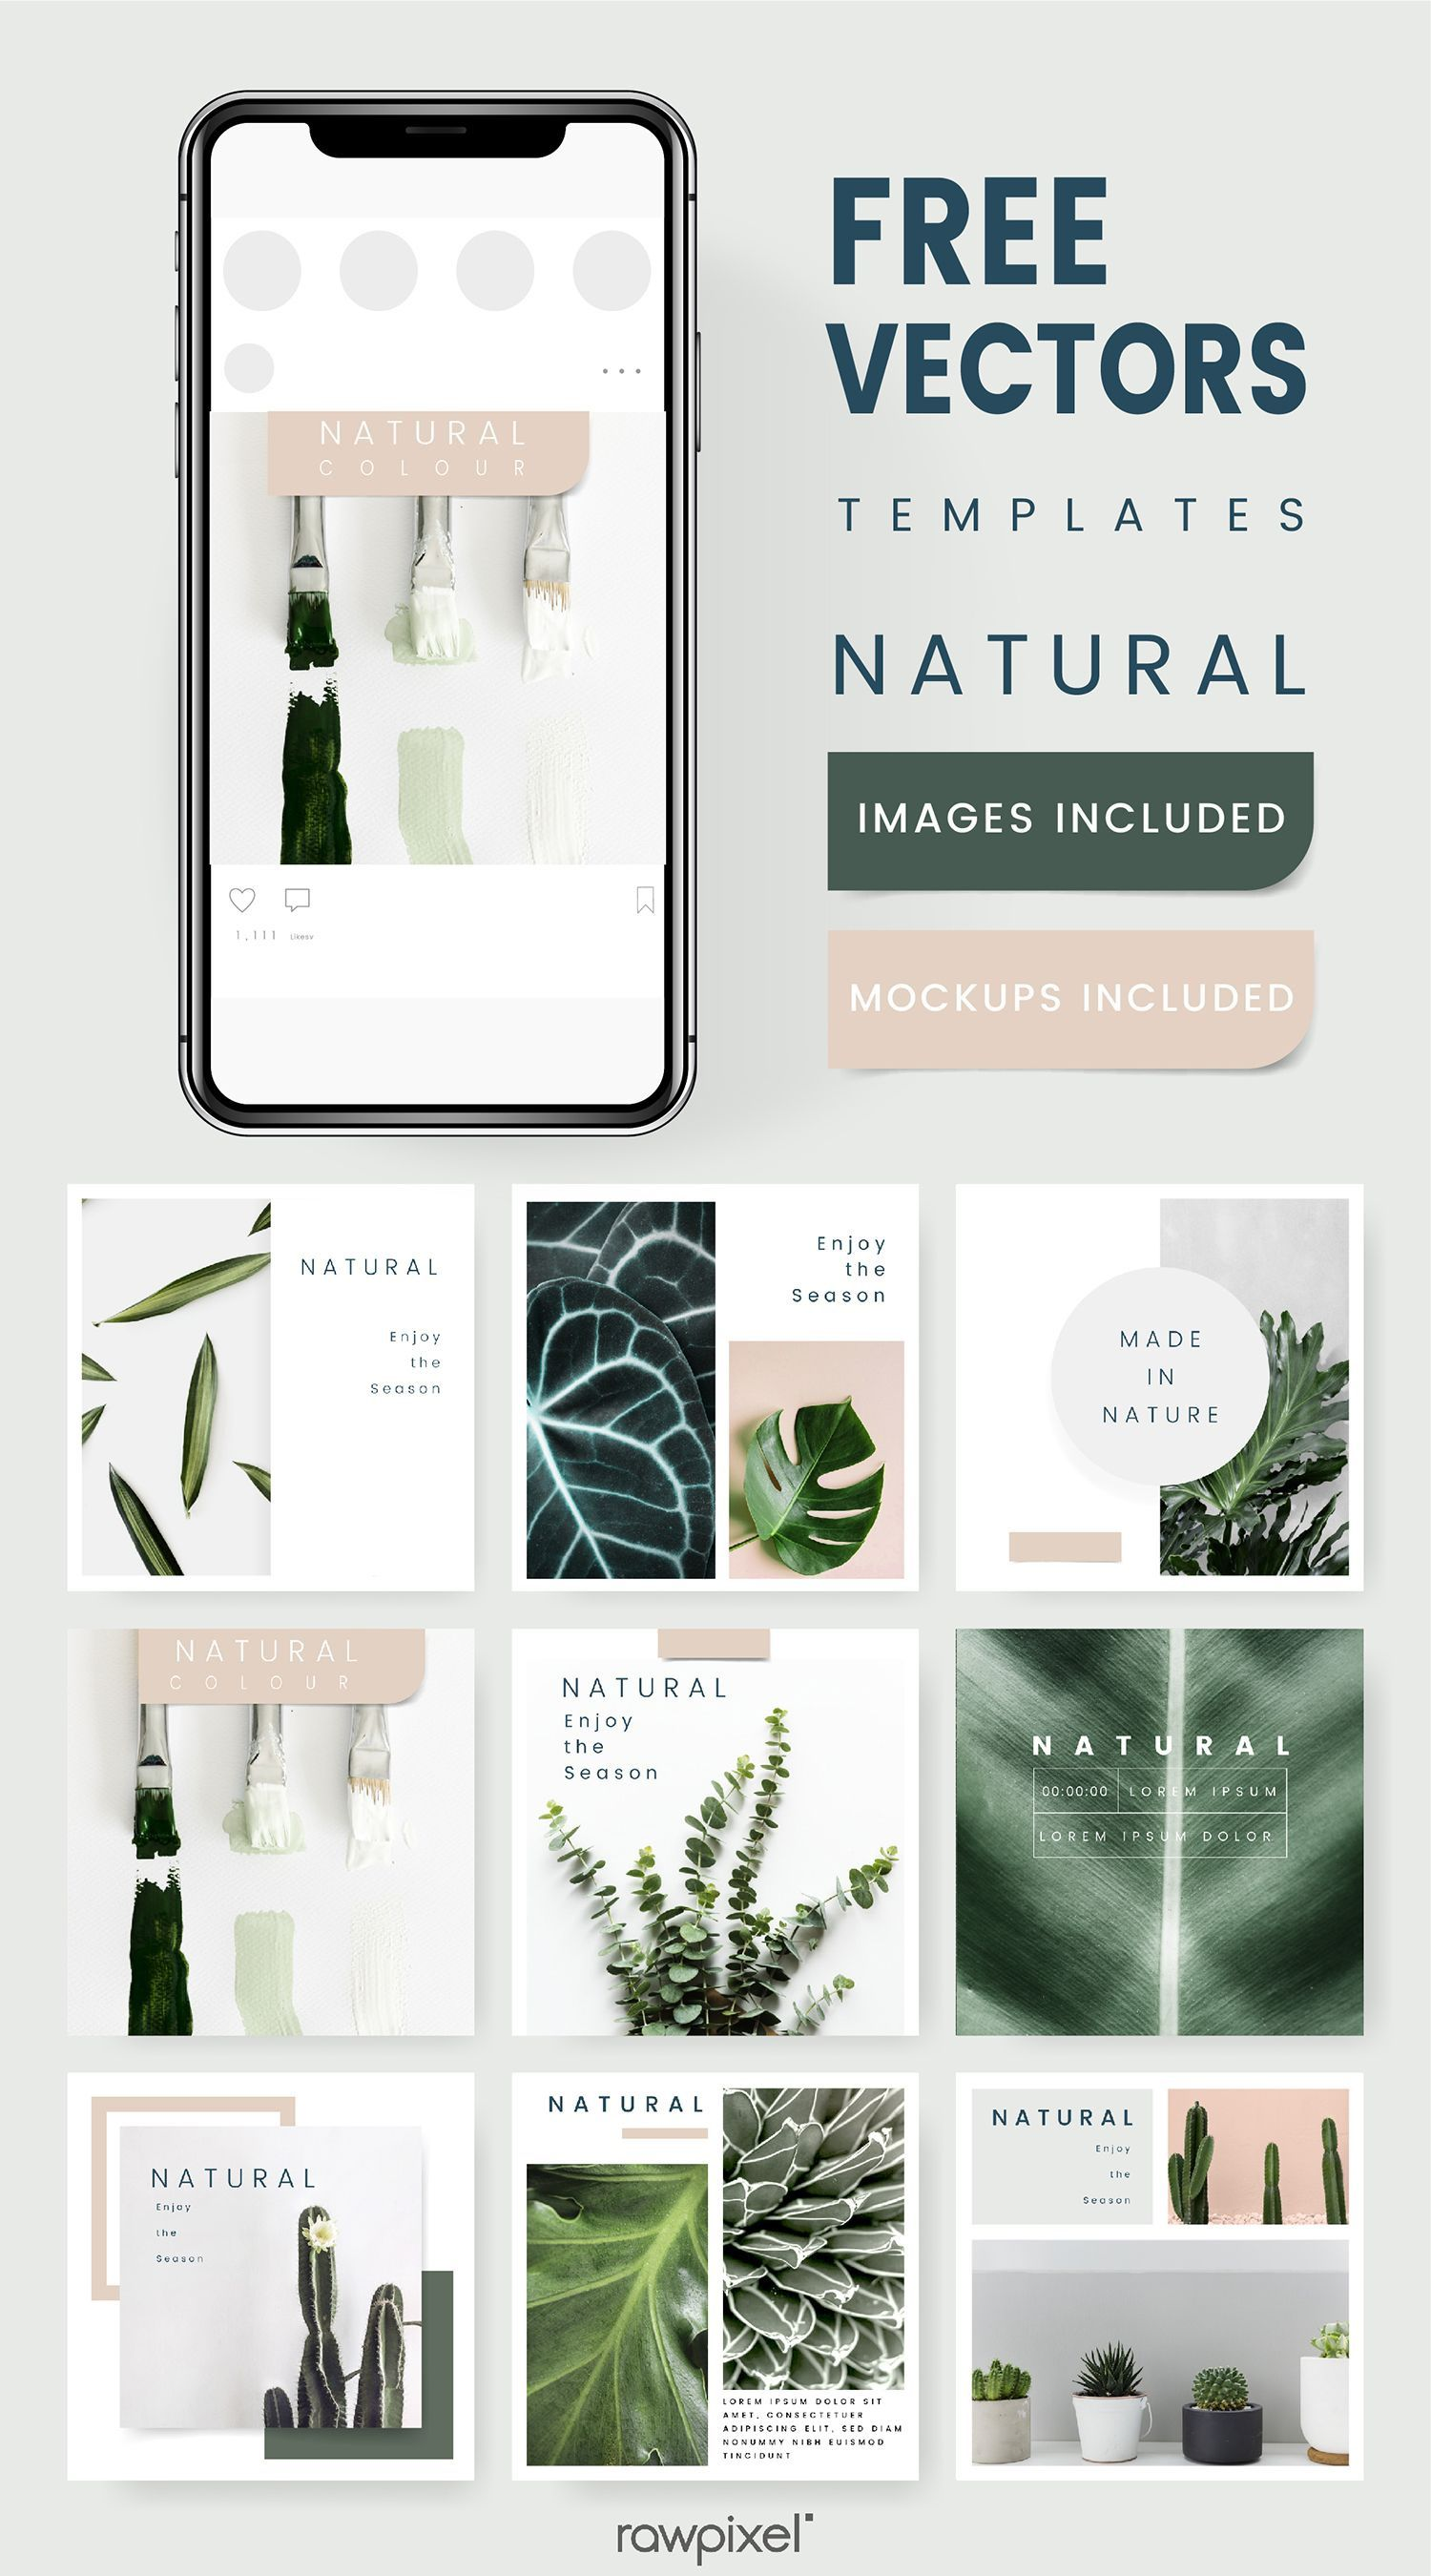 004 Impressive Free Social Media Template Inspiration  Templates Website Design Post Download For PowerpointFull